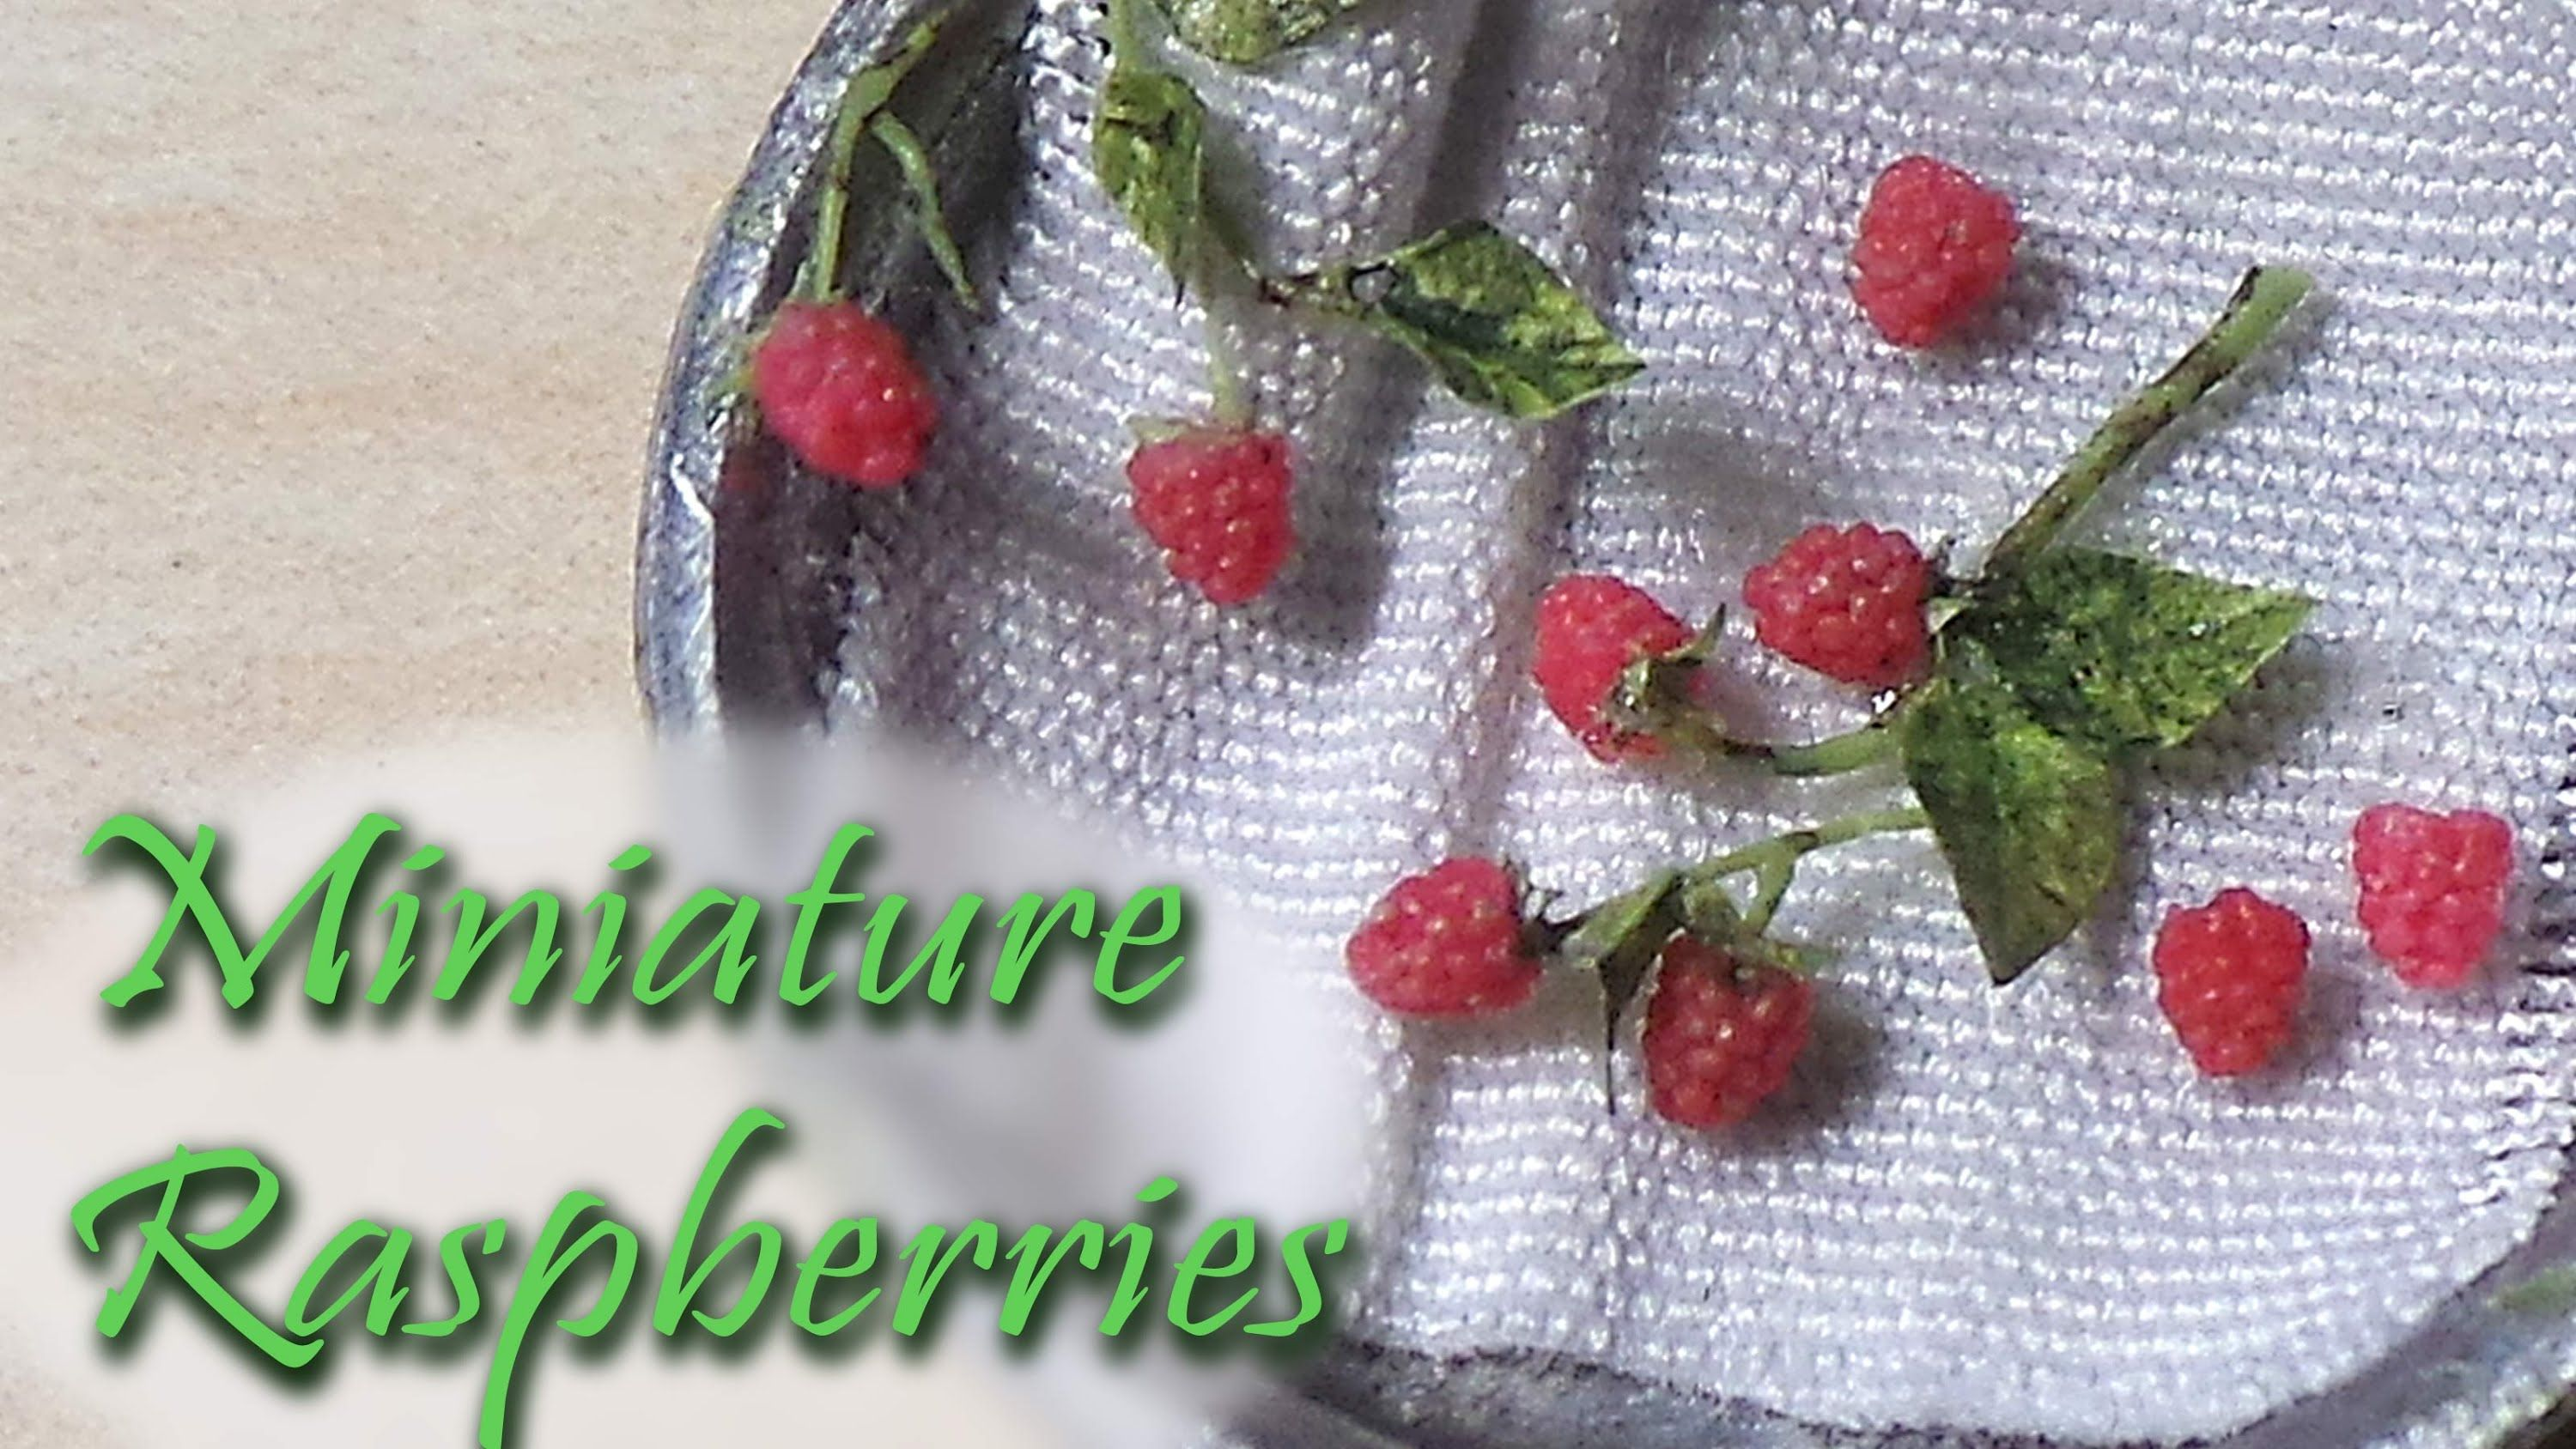 Miniature Raspberries - Raspberry Polymer Clay Tutorial